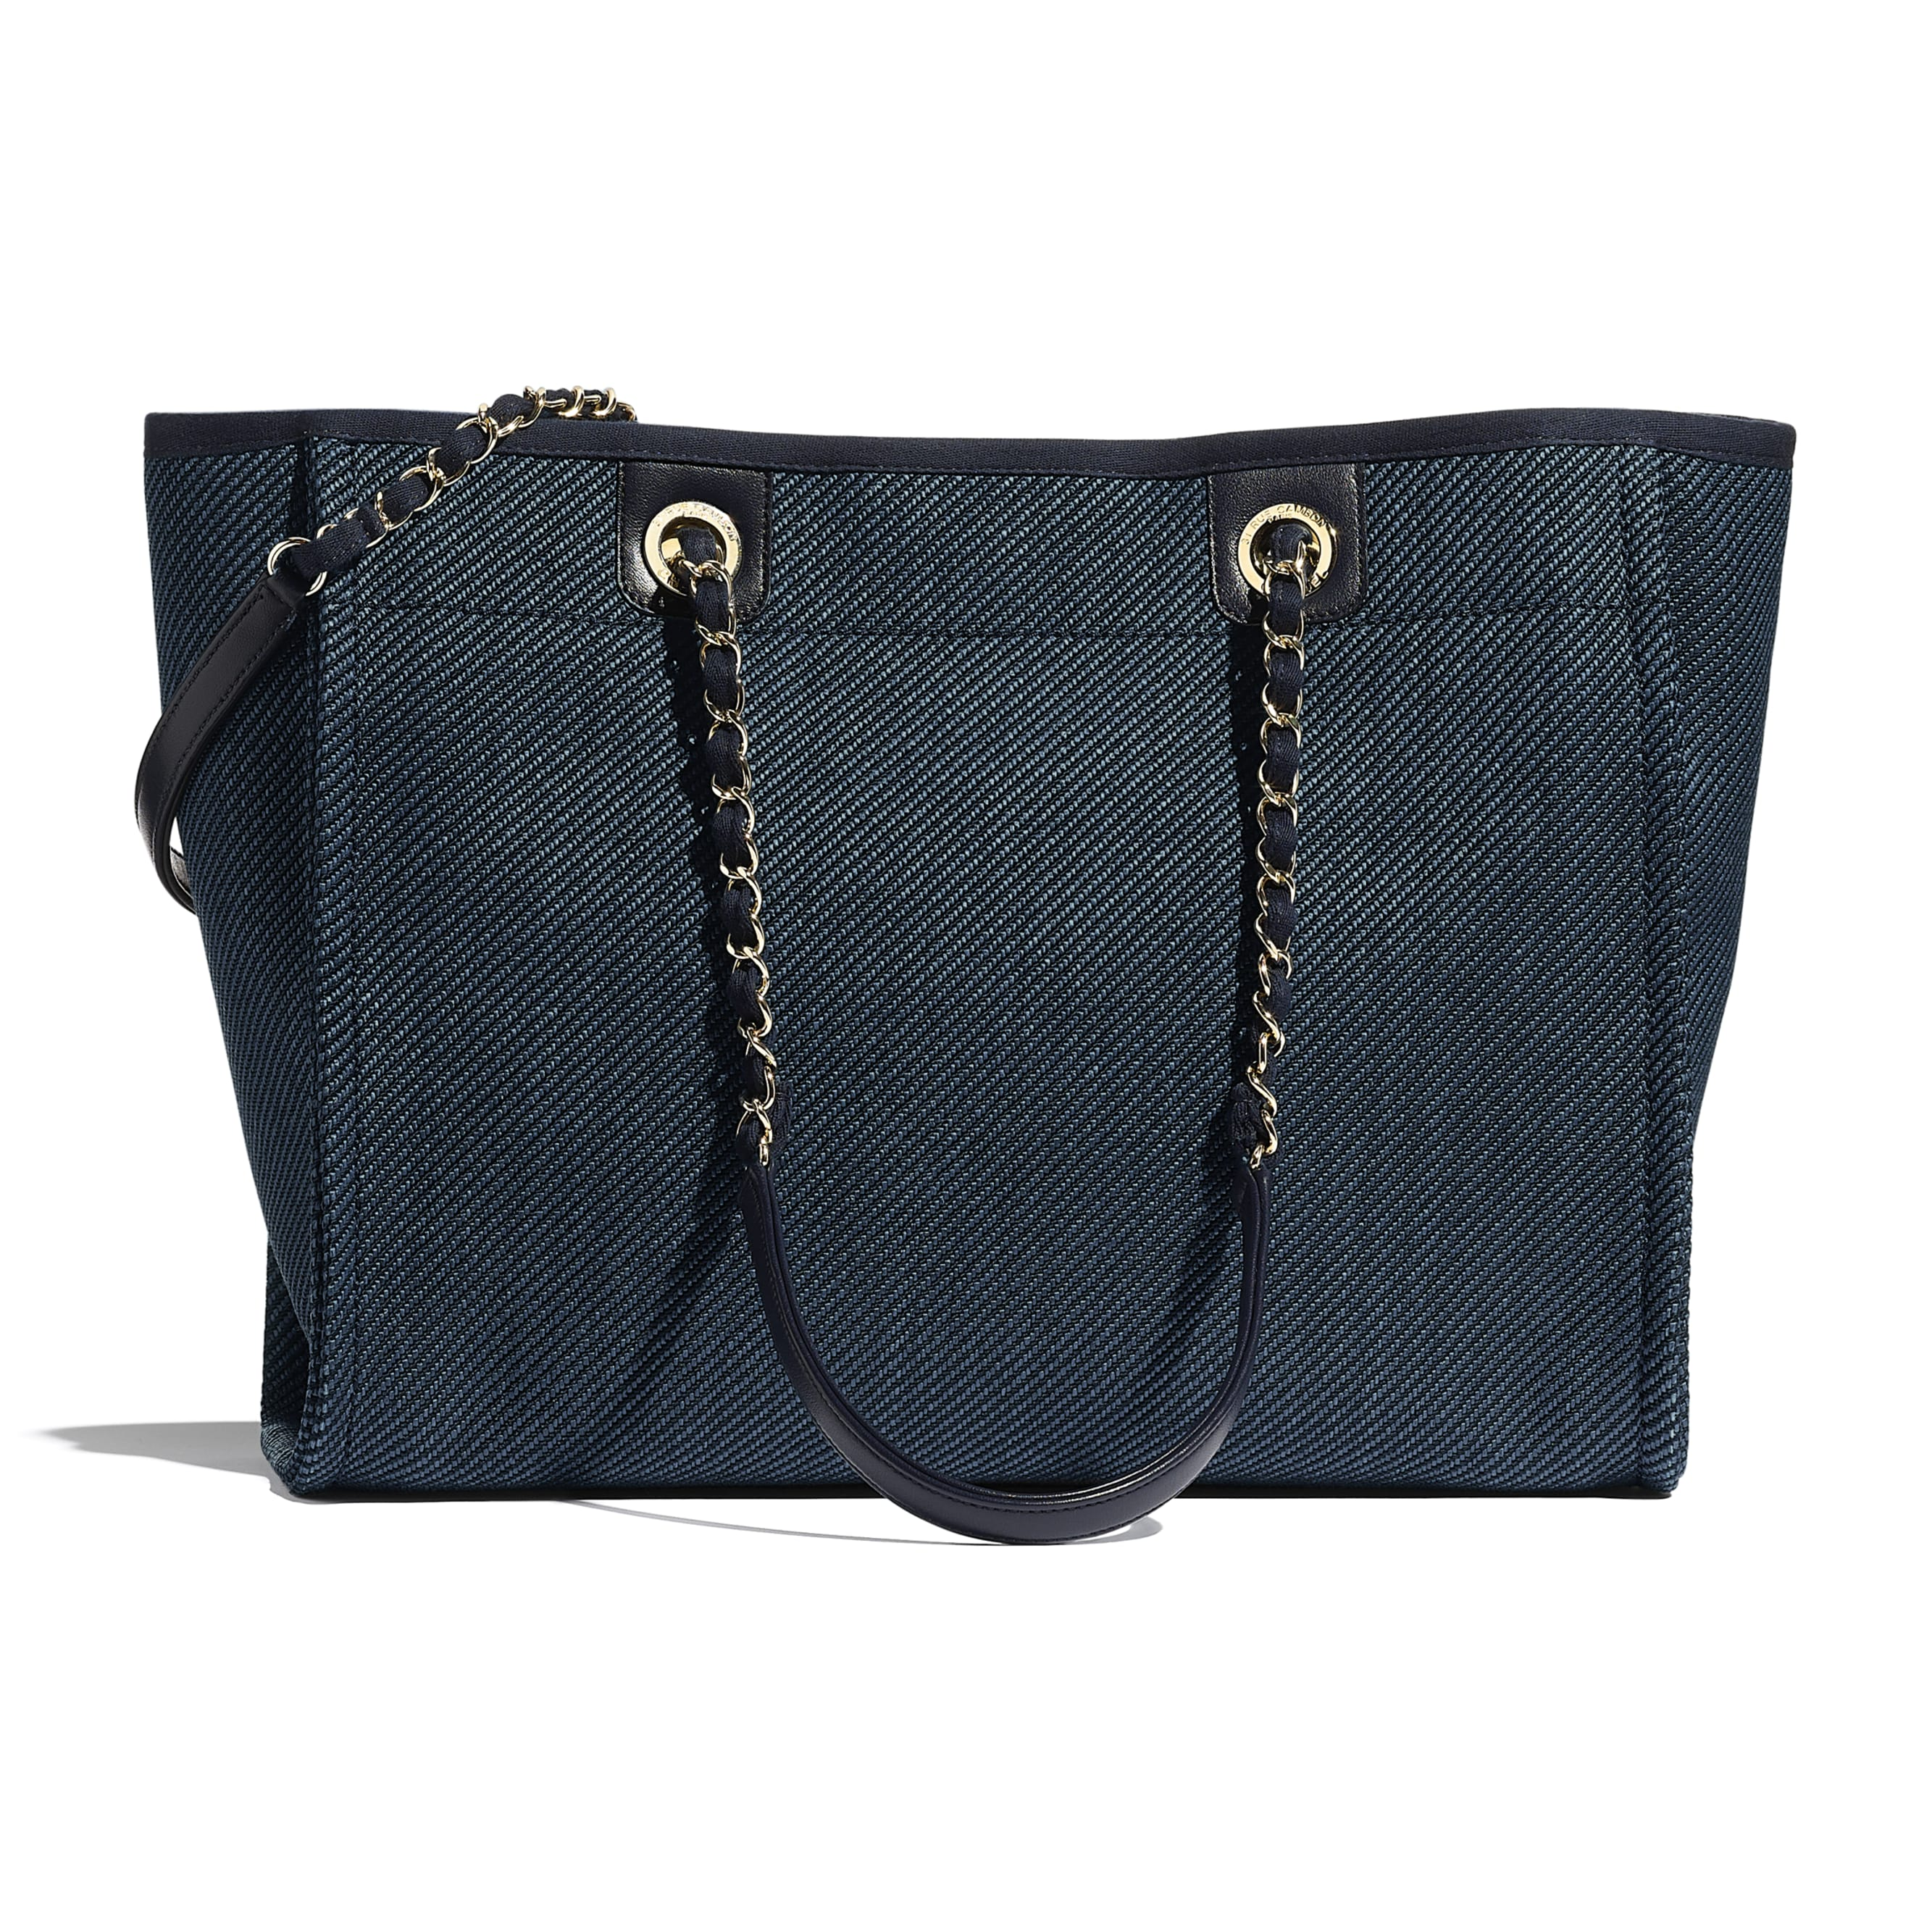 Shopping Bag - Navy Blue - Mixed Fibres, Calfskin & Gold-Tone Metal - CHANEL - Alternative view - see standard sized version